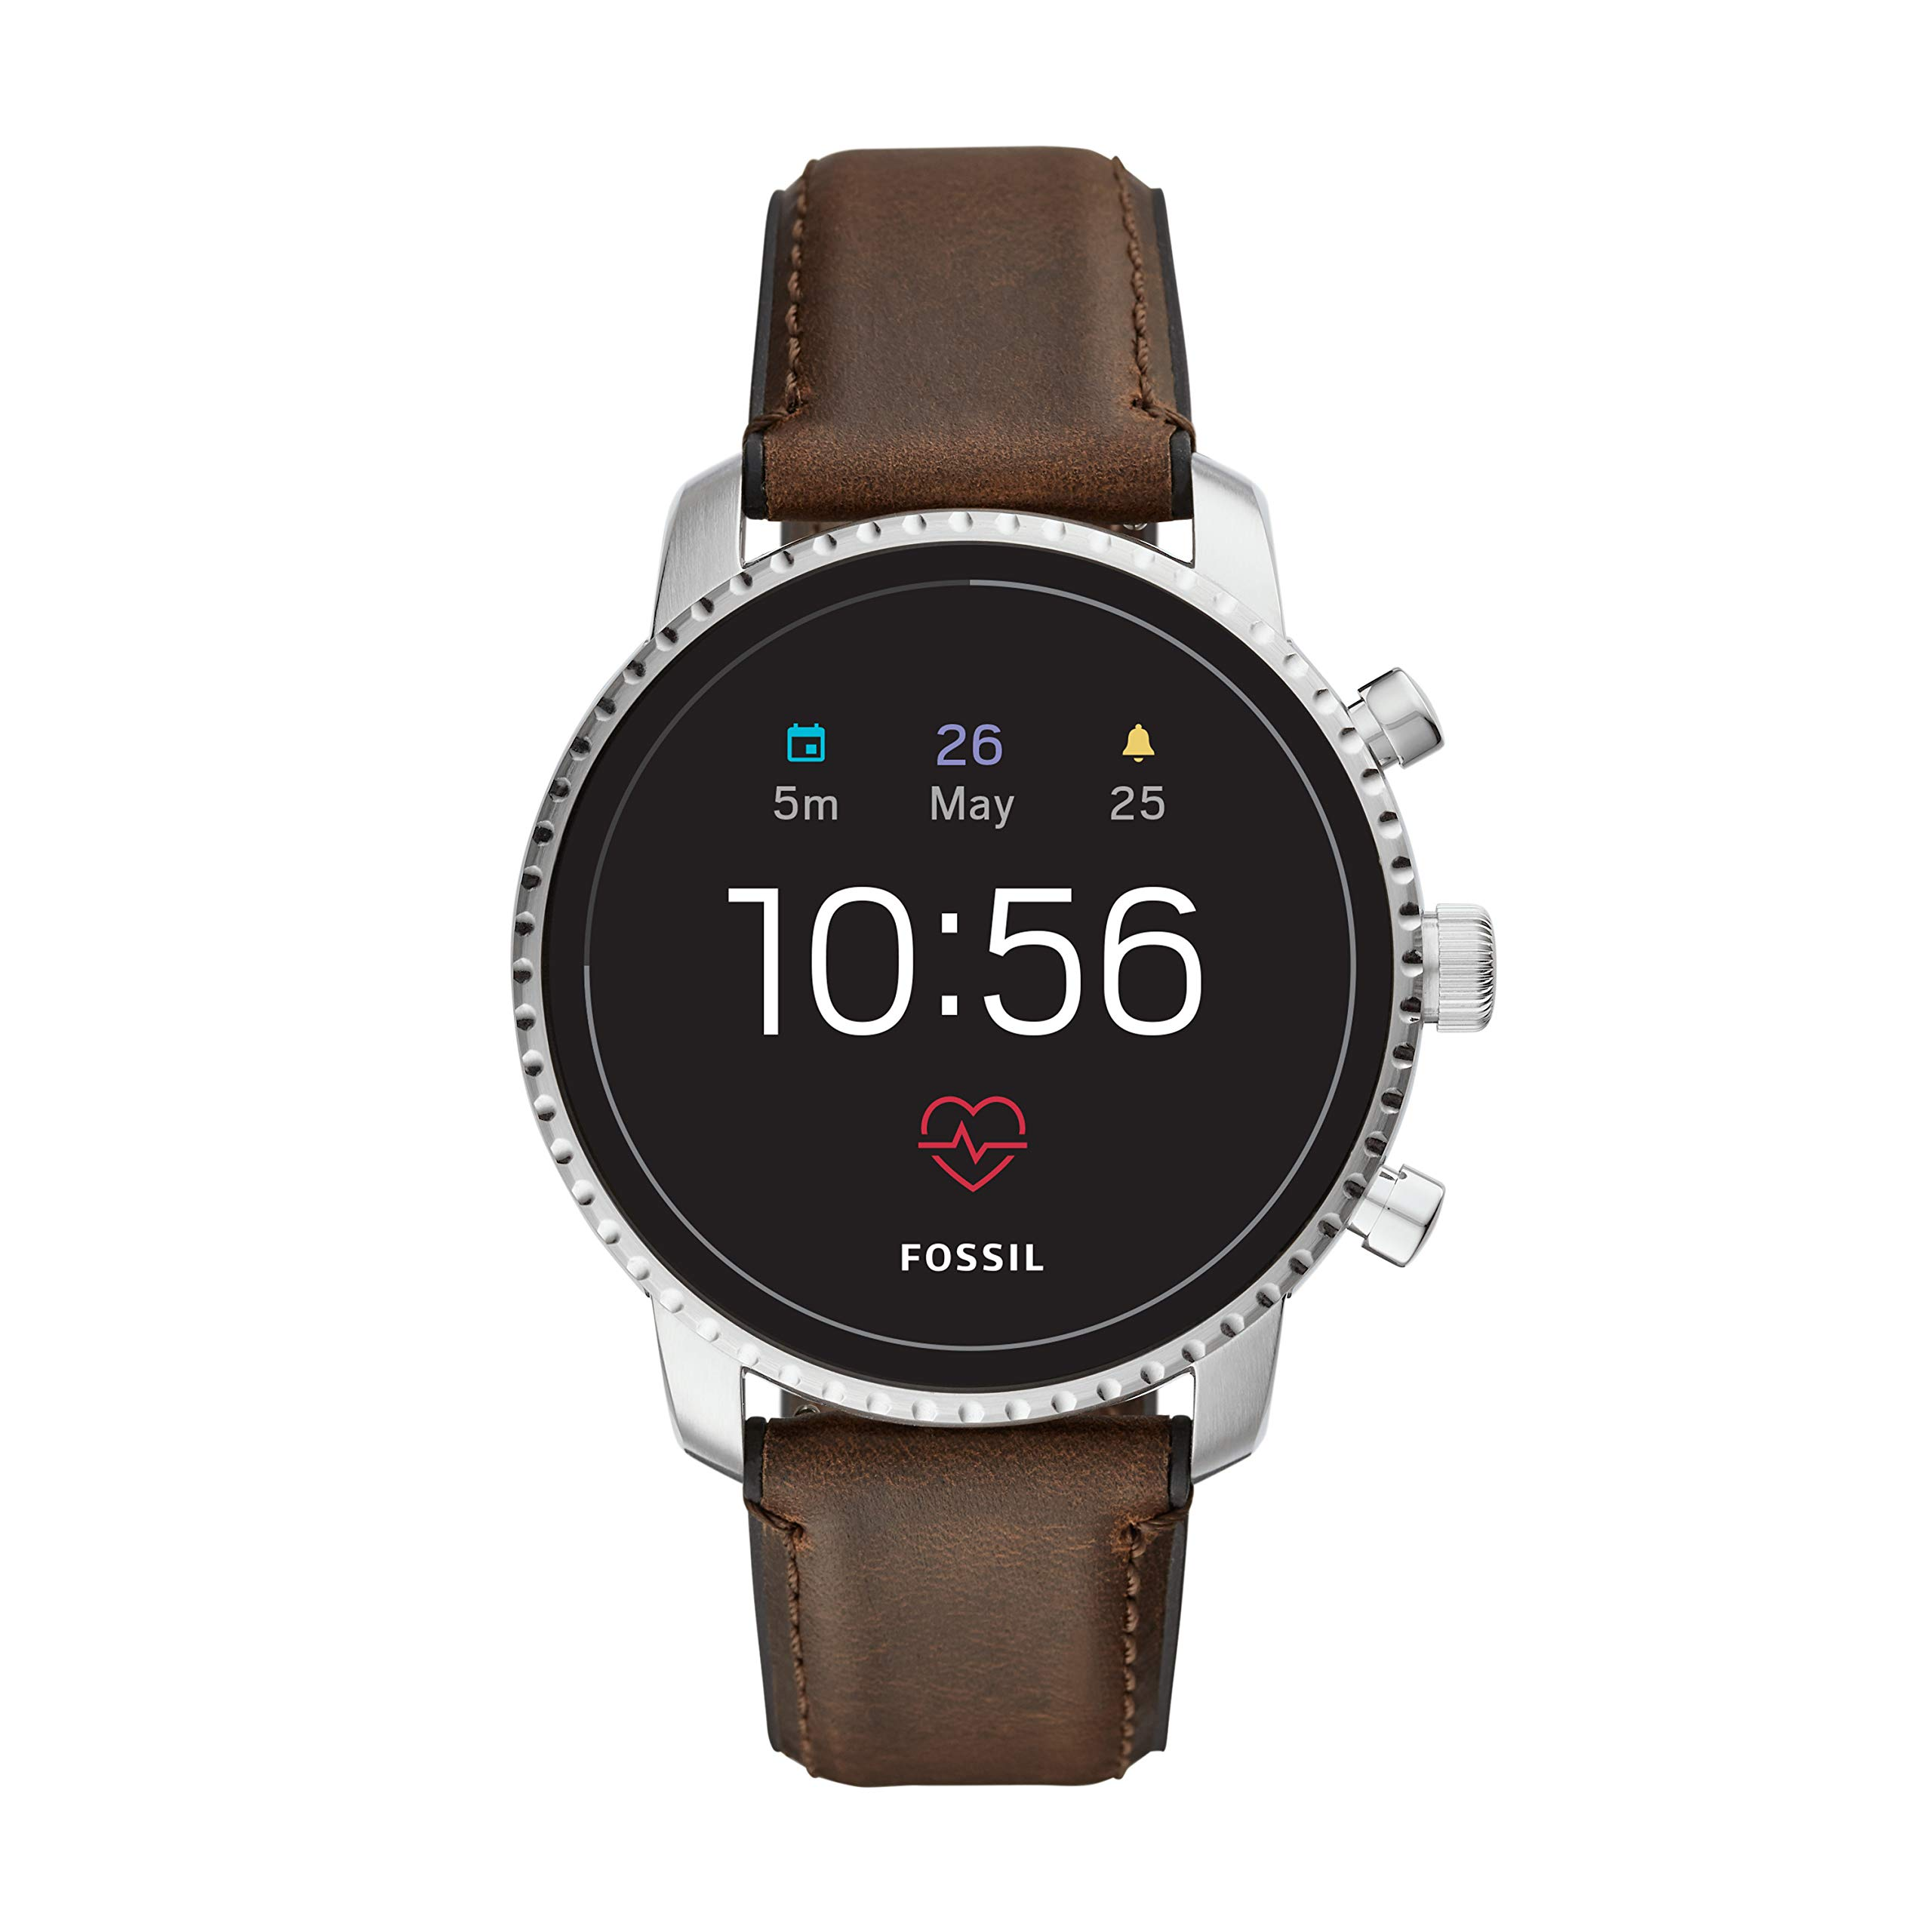 Fossil Men's Gen 4 Explorist HR Stainless Steel and Leather Touchscreen Smartwatch, Color: Silver, Brown (Model: FTW4015)